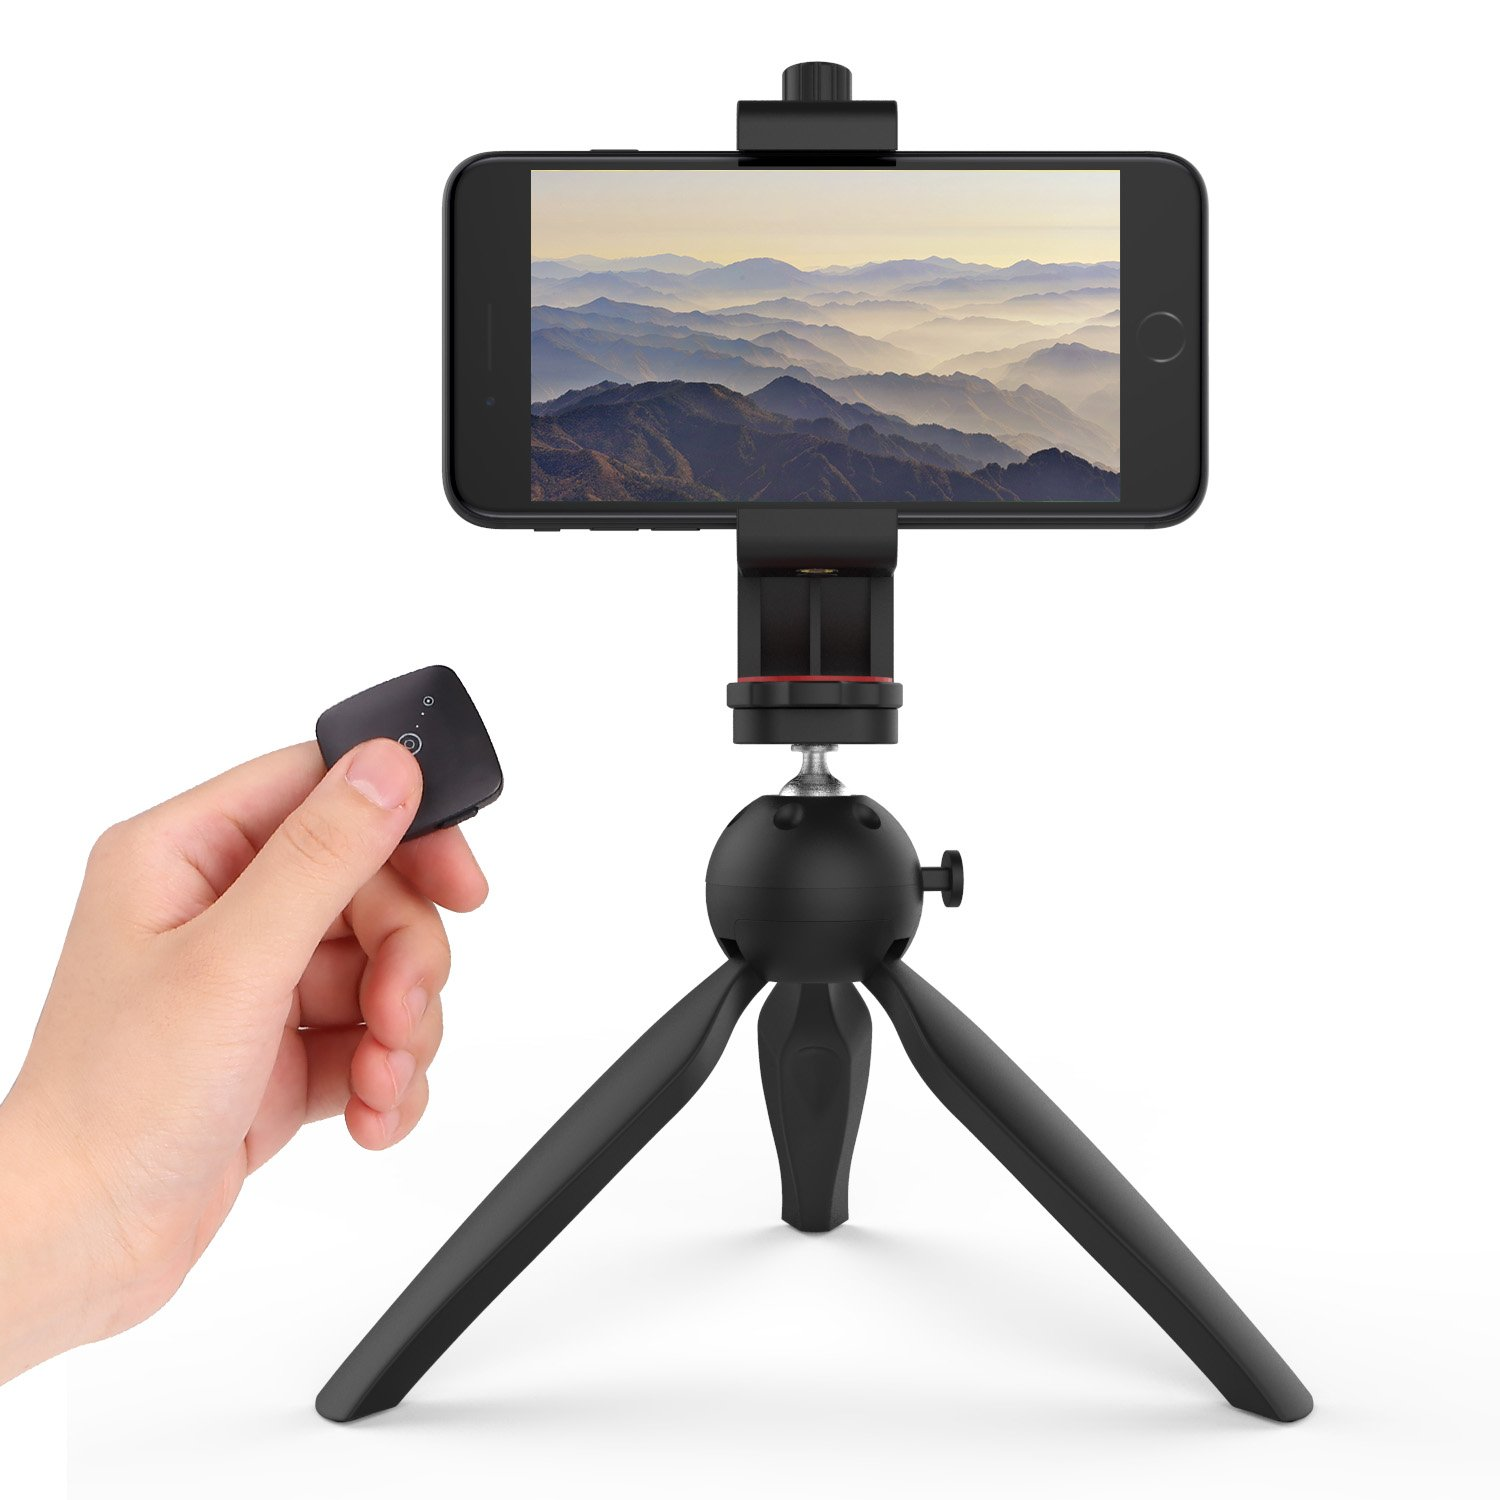 Phone Camera Tripod, MoKo Flexible Tripod Stand Holder with Bluetooth Remote and Universal Clip for iPhone X, 8 Plus, 7 Plus, 6S Plus, iPhone 8, 7, 6S, 6, Samsung Note 8, S8 Plus, S8, S7 edge - BLACK